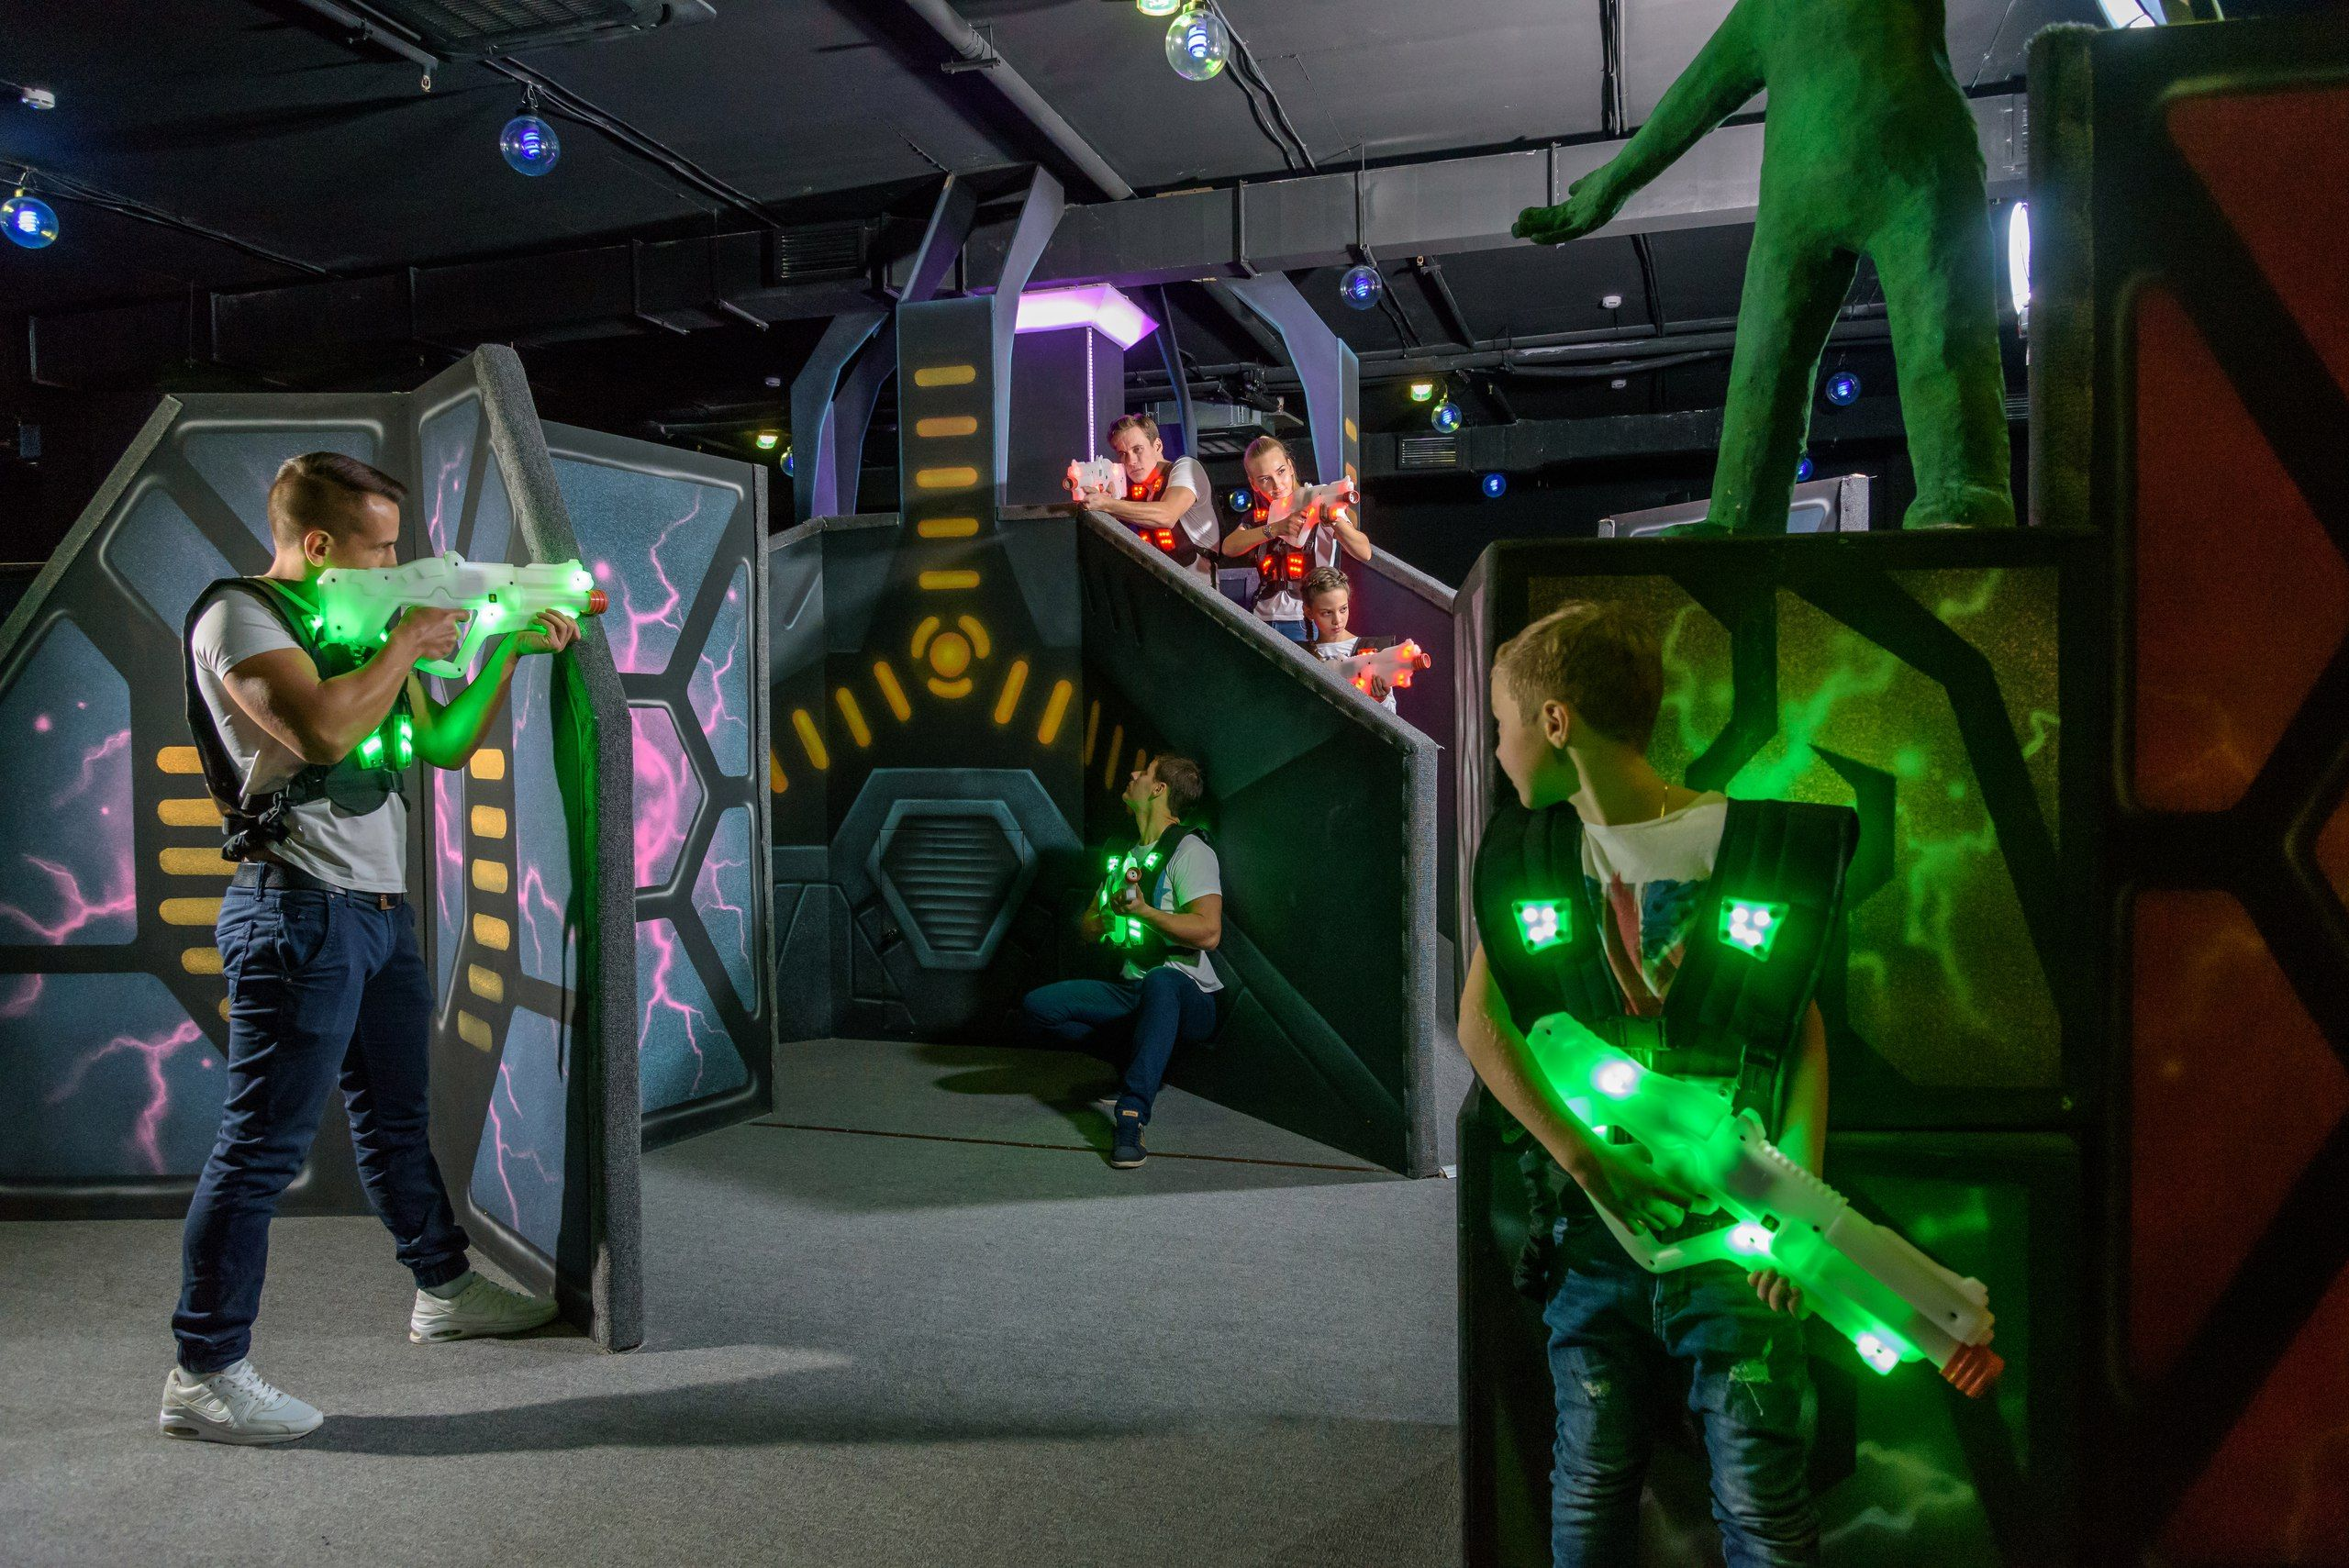 Equipment For Arena Laser Tag Lasertag Net